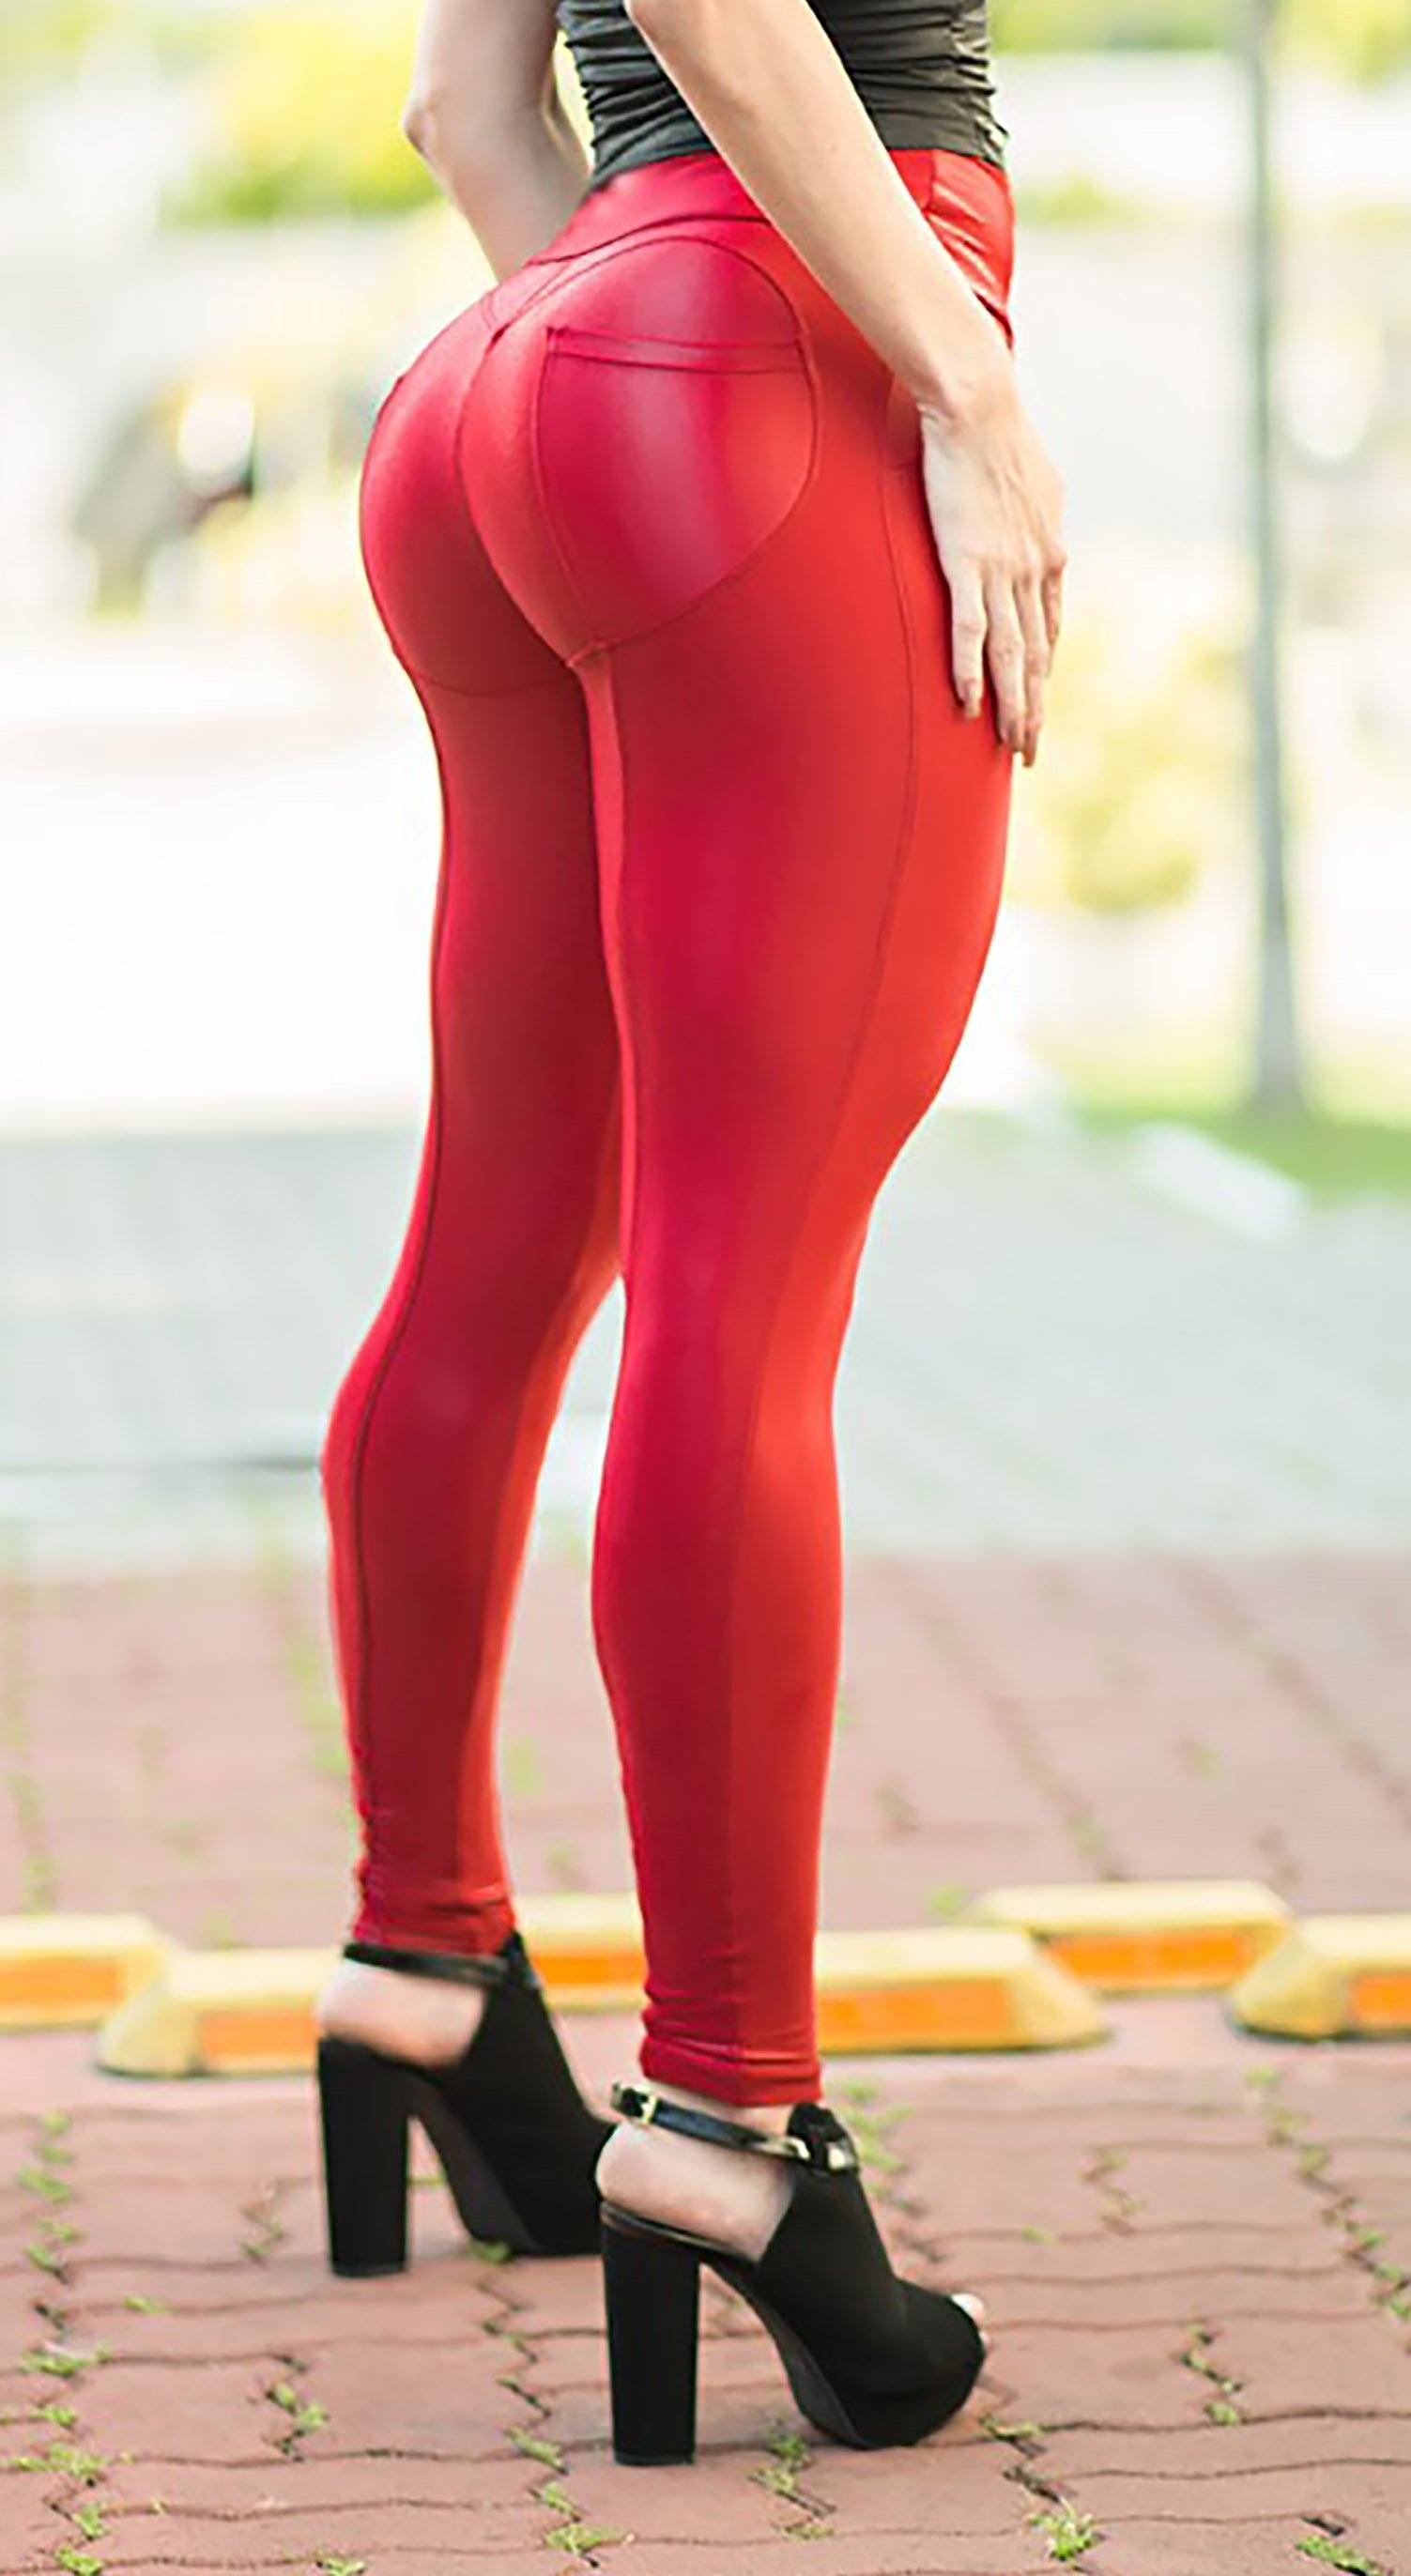 Brazilian Workout Legging - Push Up Wonder Red